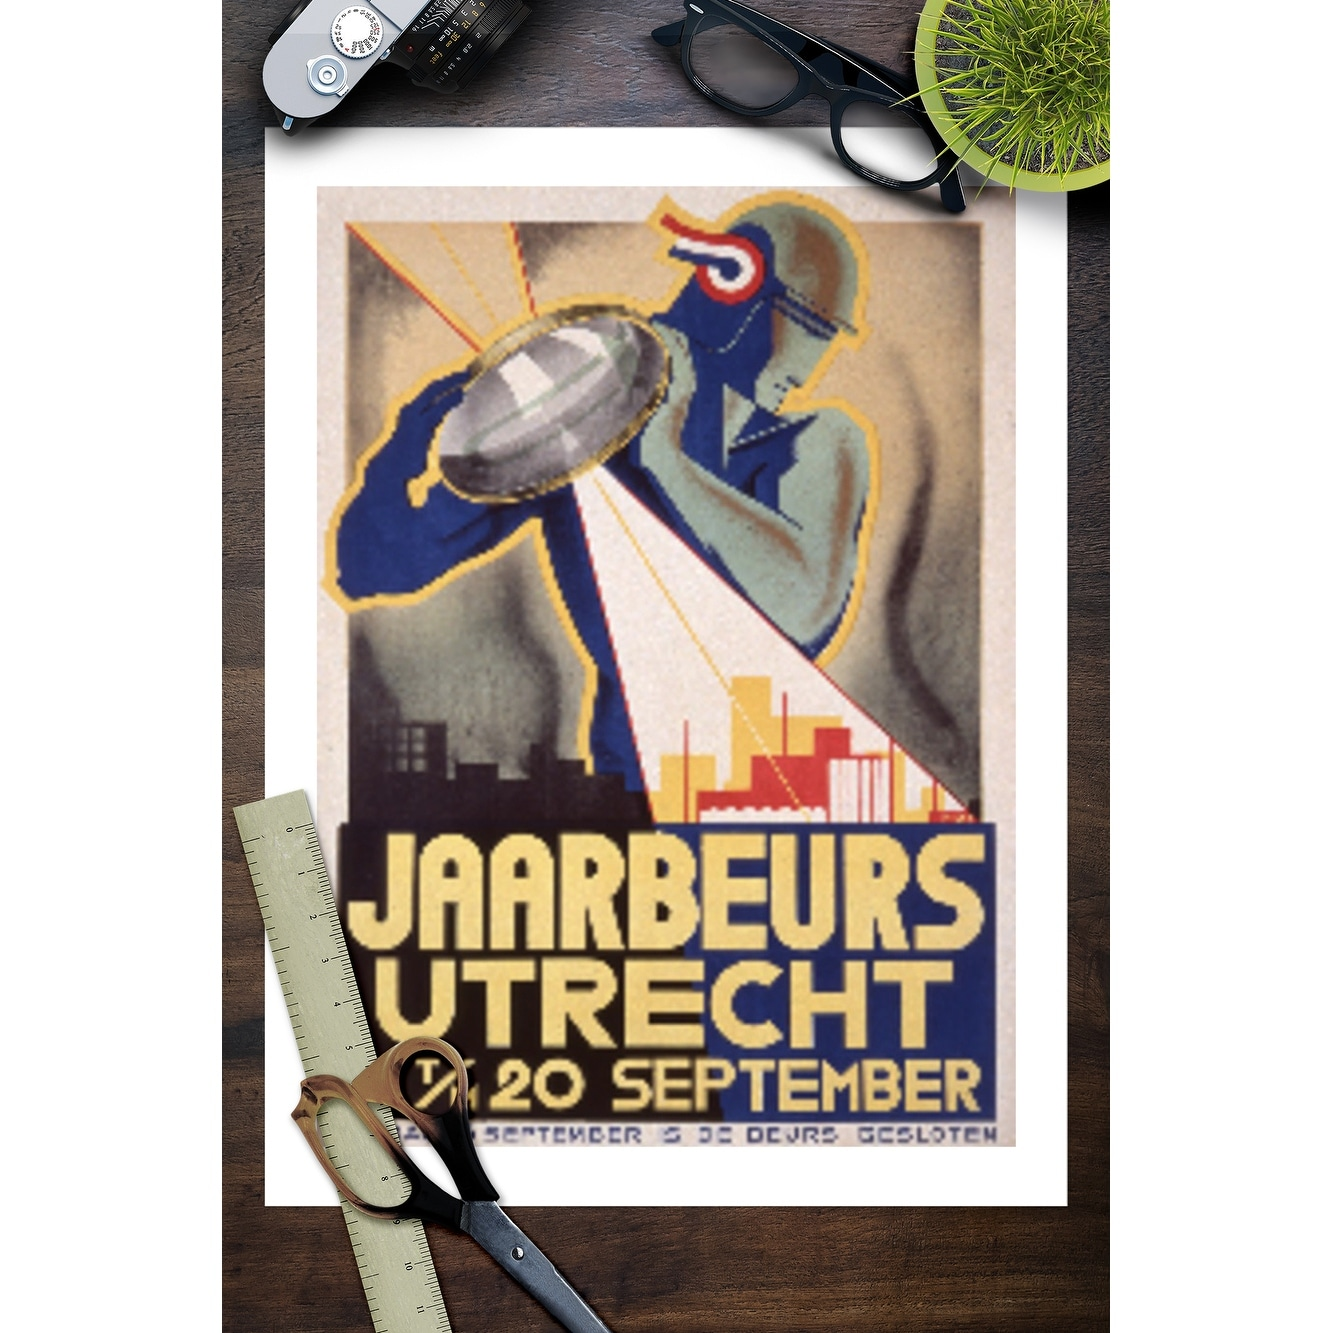 Vintage Shop Utrecht Jaarbeurs Utrecht Vintage Poster Artist Pieck Netherlands C 1934 Art Print Multiple Sizes Available 9 X 12 Art Print